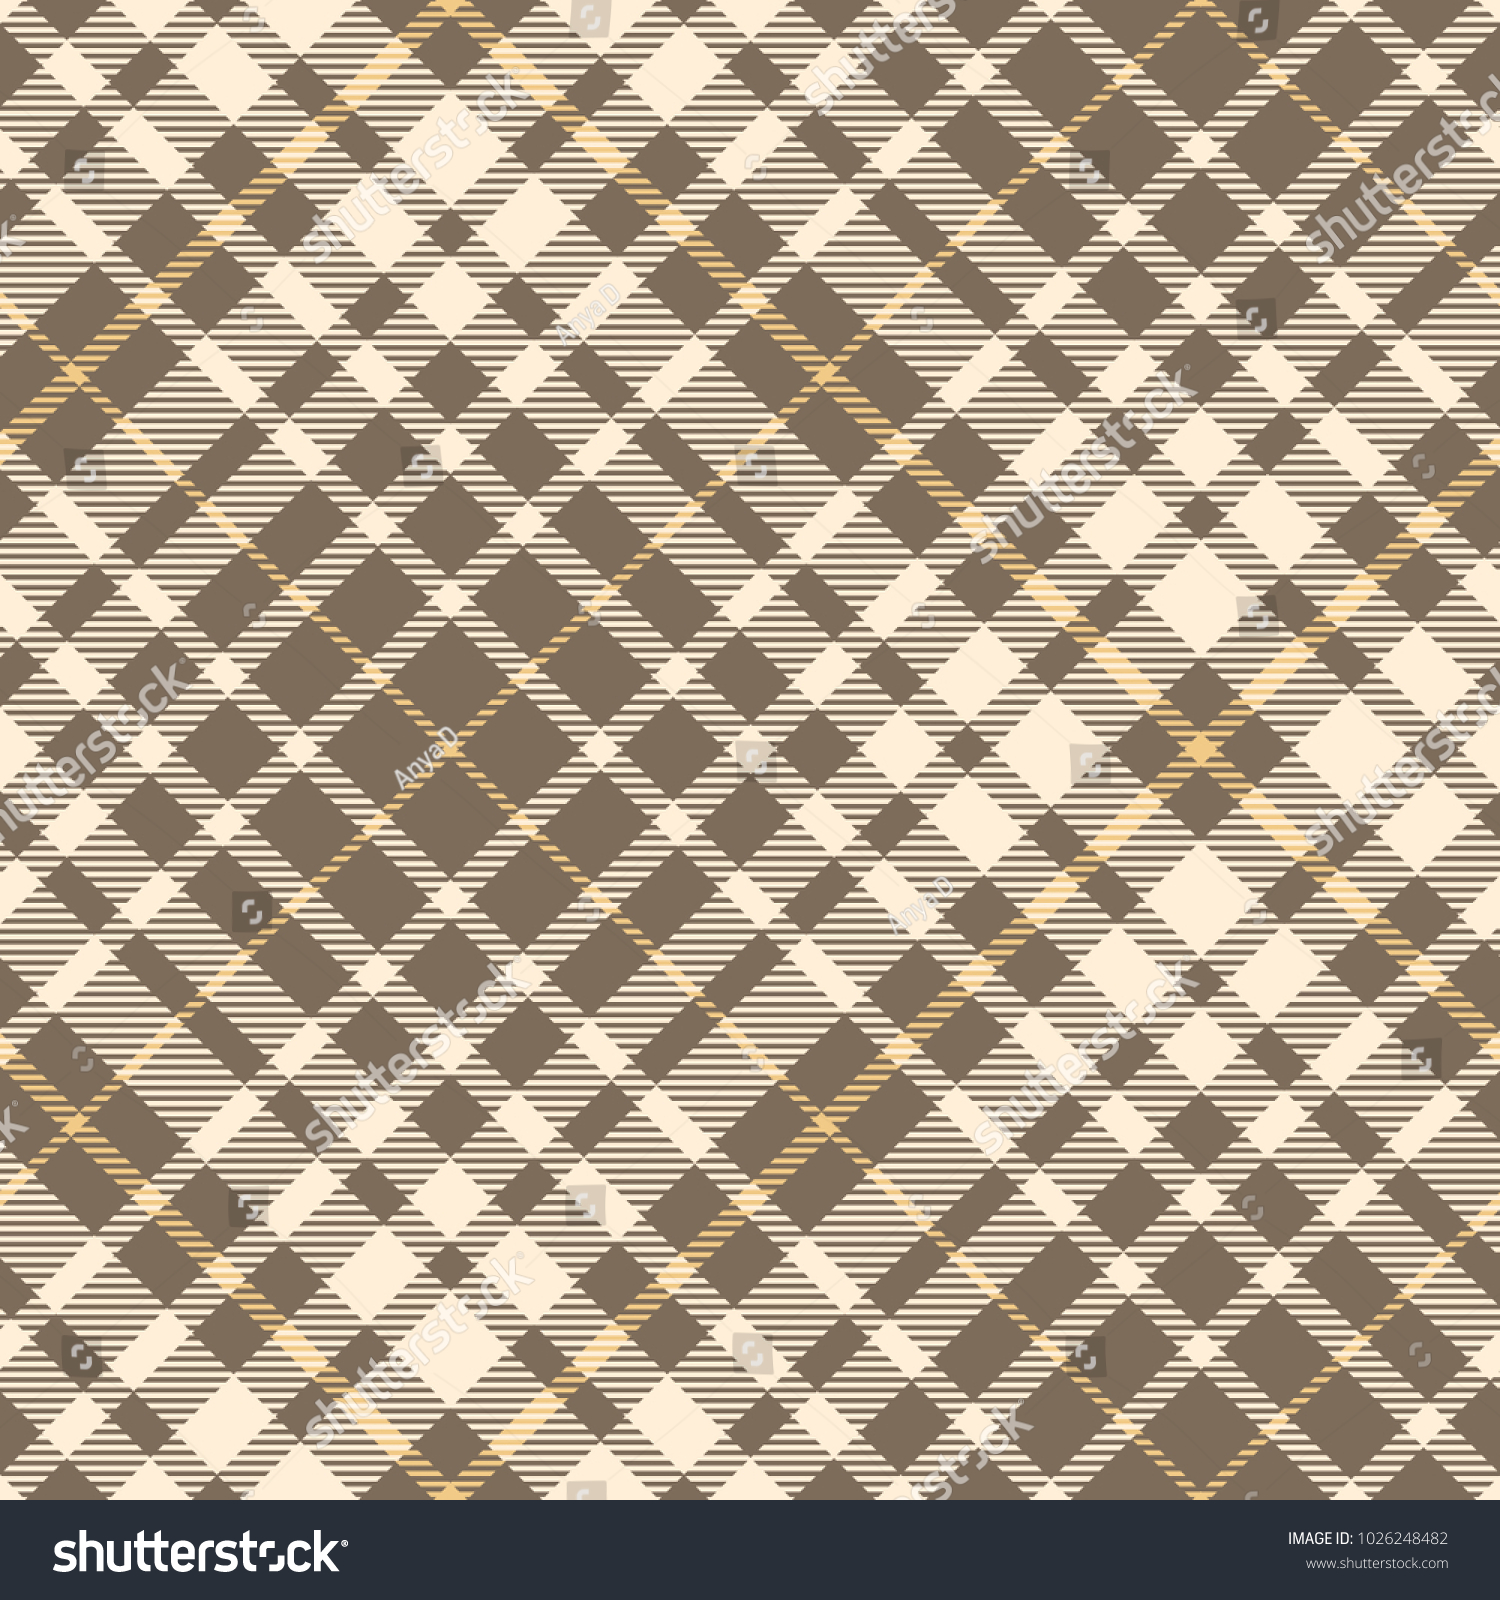 Brown Seamless Fabric Textures Plaid Check Pattern Shades Beige Brown Stock Vector Royalty Free